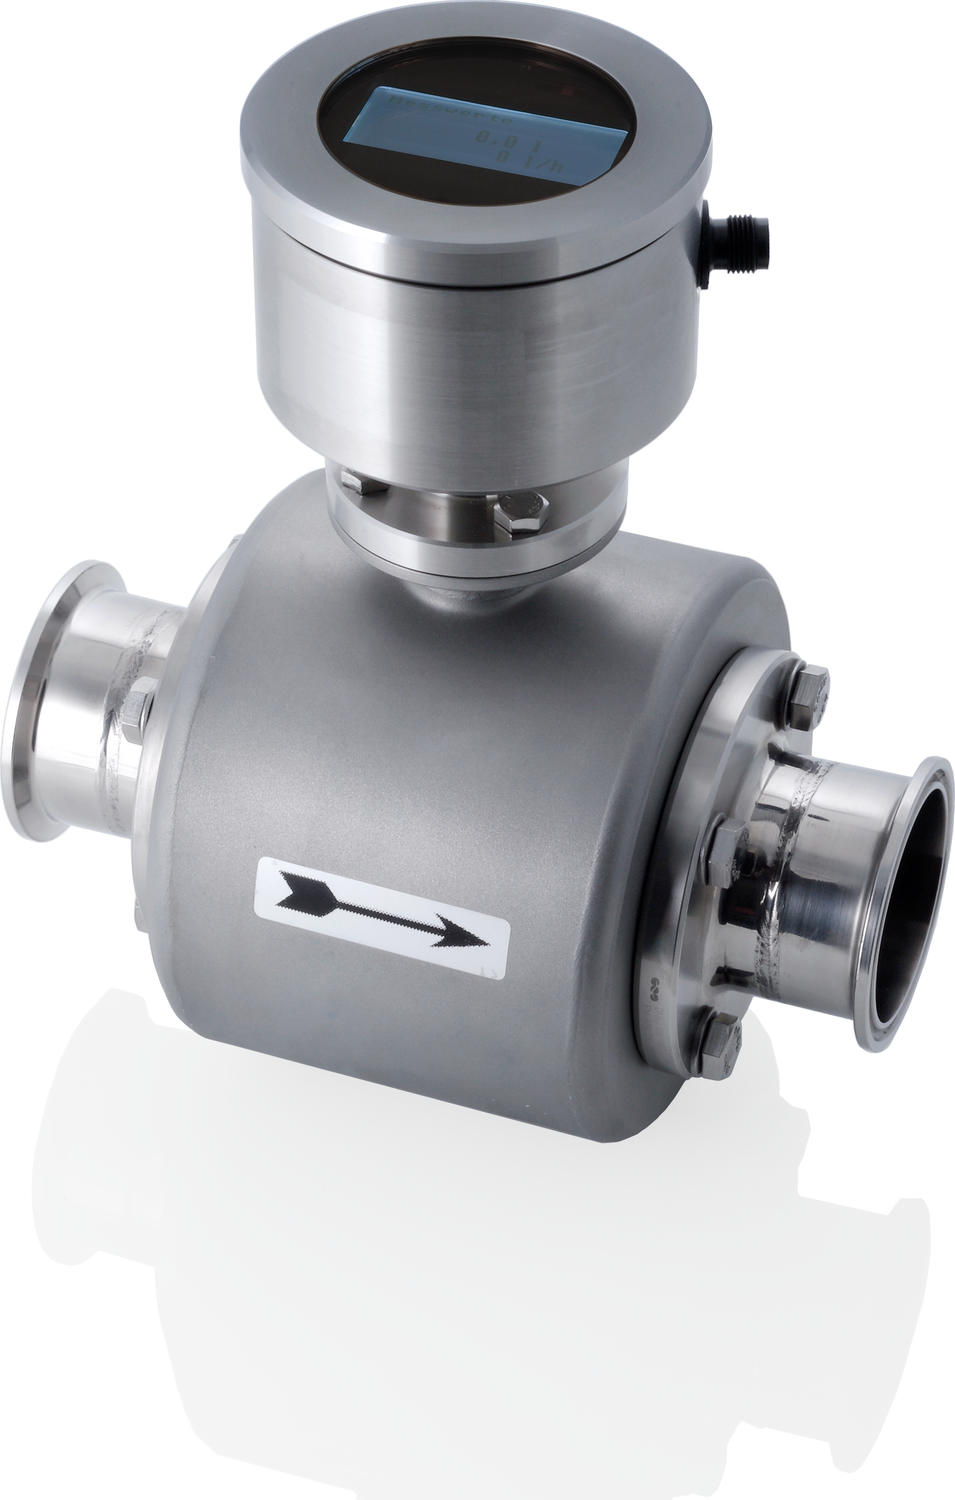 Magnetic-Inductive Flow Meter FMQ